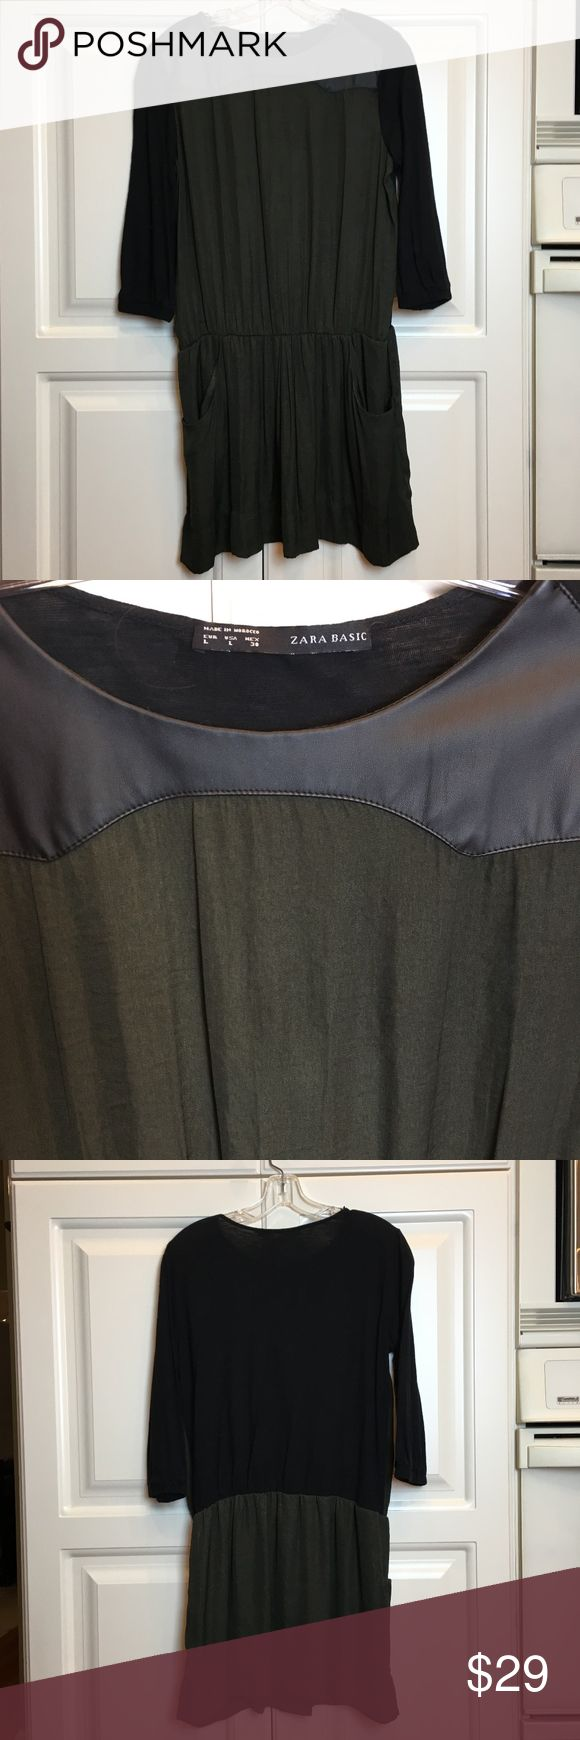 "*SALE* Zara Colorblock Dress Sz L Zara Basic Colorblock Dress  Olive Green & Black with Faux Leather Detail at Neckline Green Sections are silky, Black are Knit Skirt is Lined - Fabric Content tag was removed Elastic Waist, Front Pockets Measures 19"" Across Chest Laying Flat 36"" Shoulder to Hemline zara Dresses Mini"